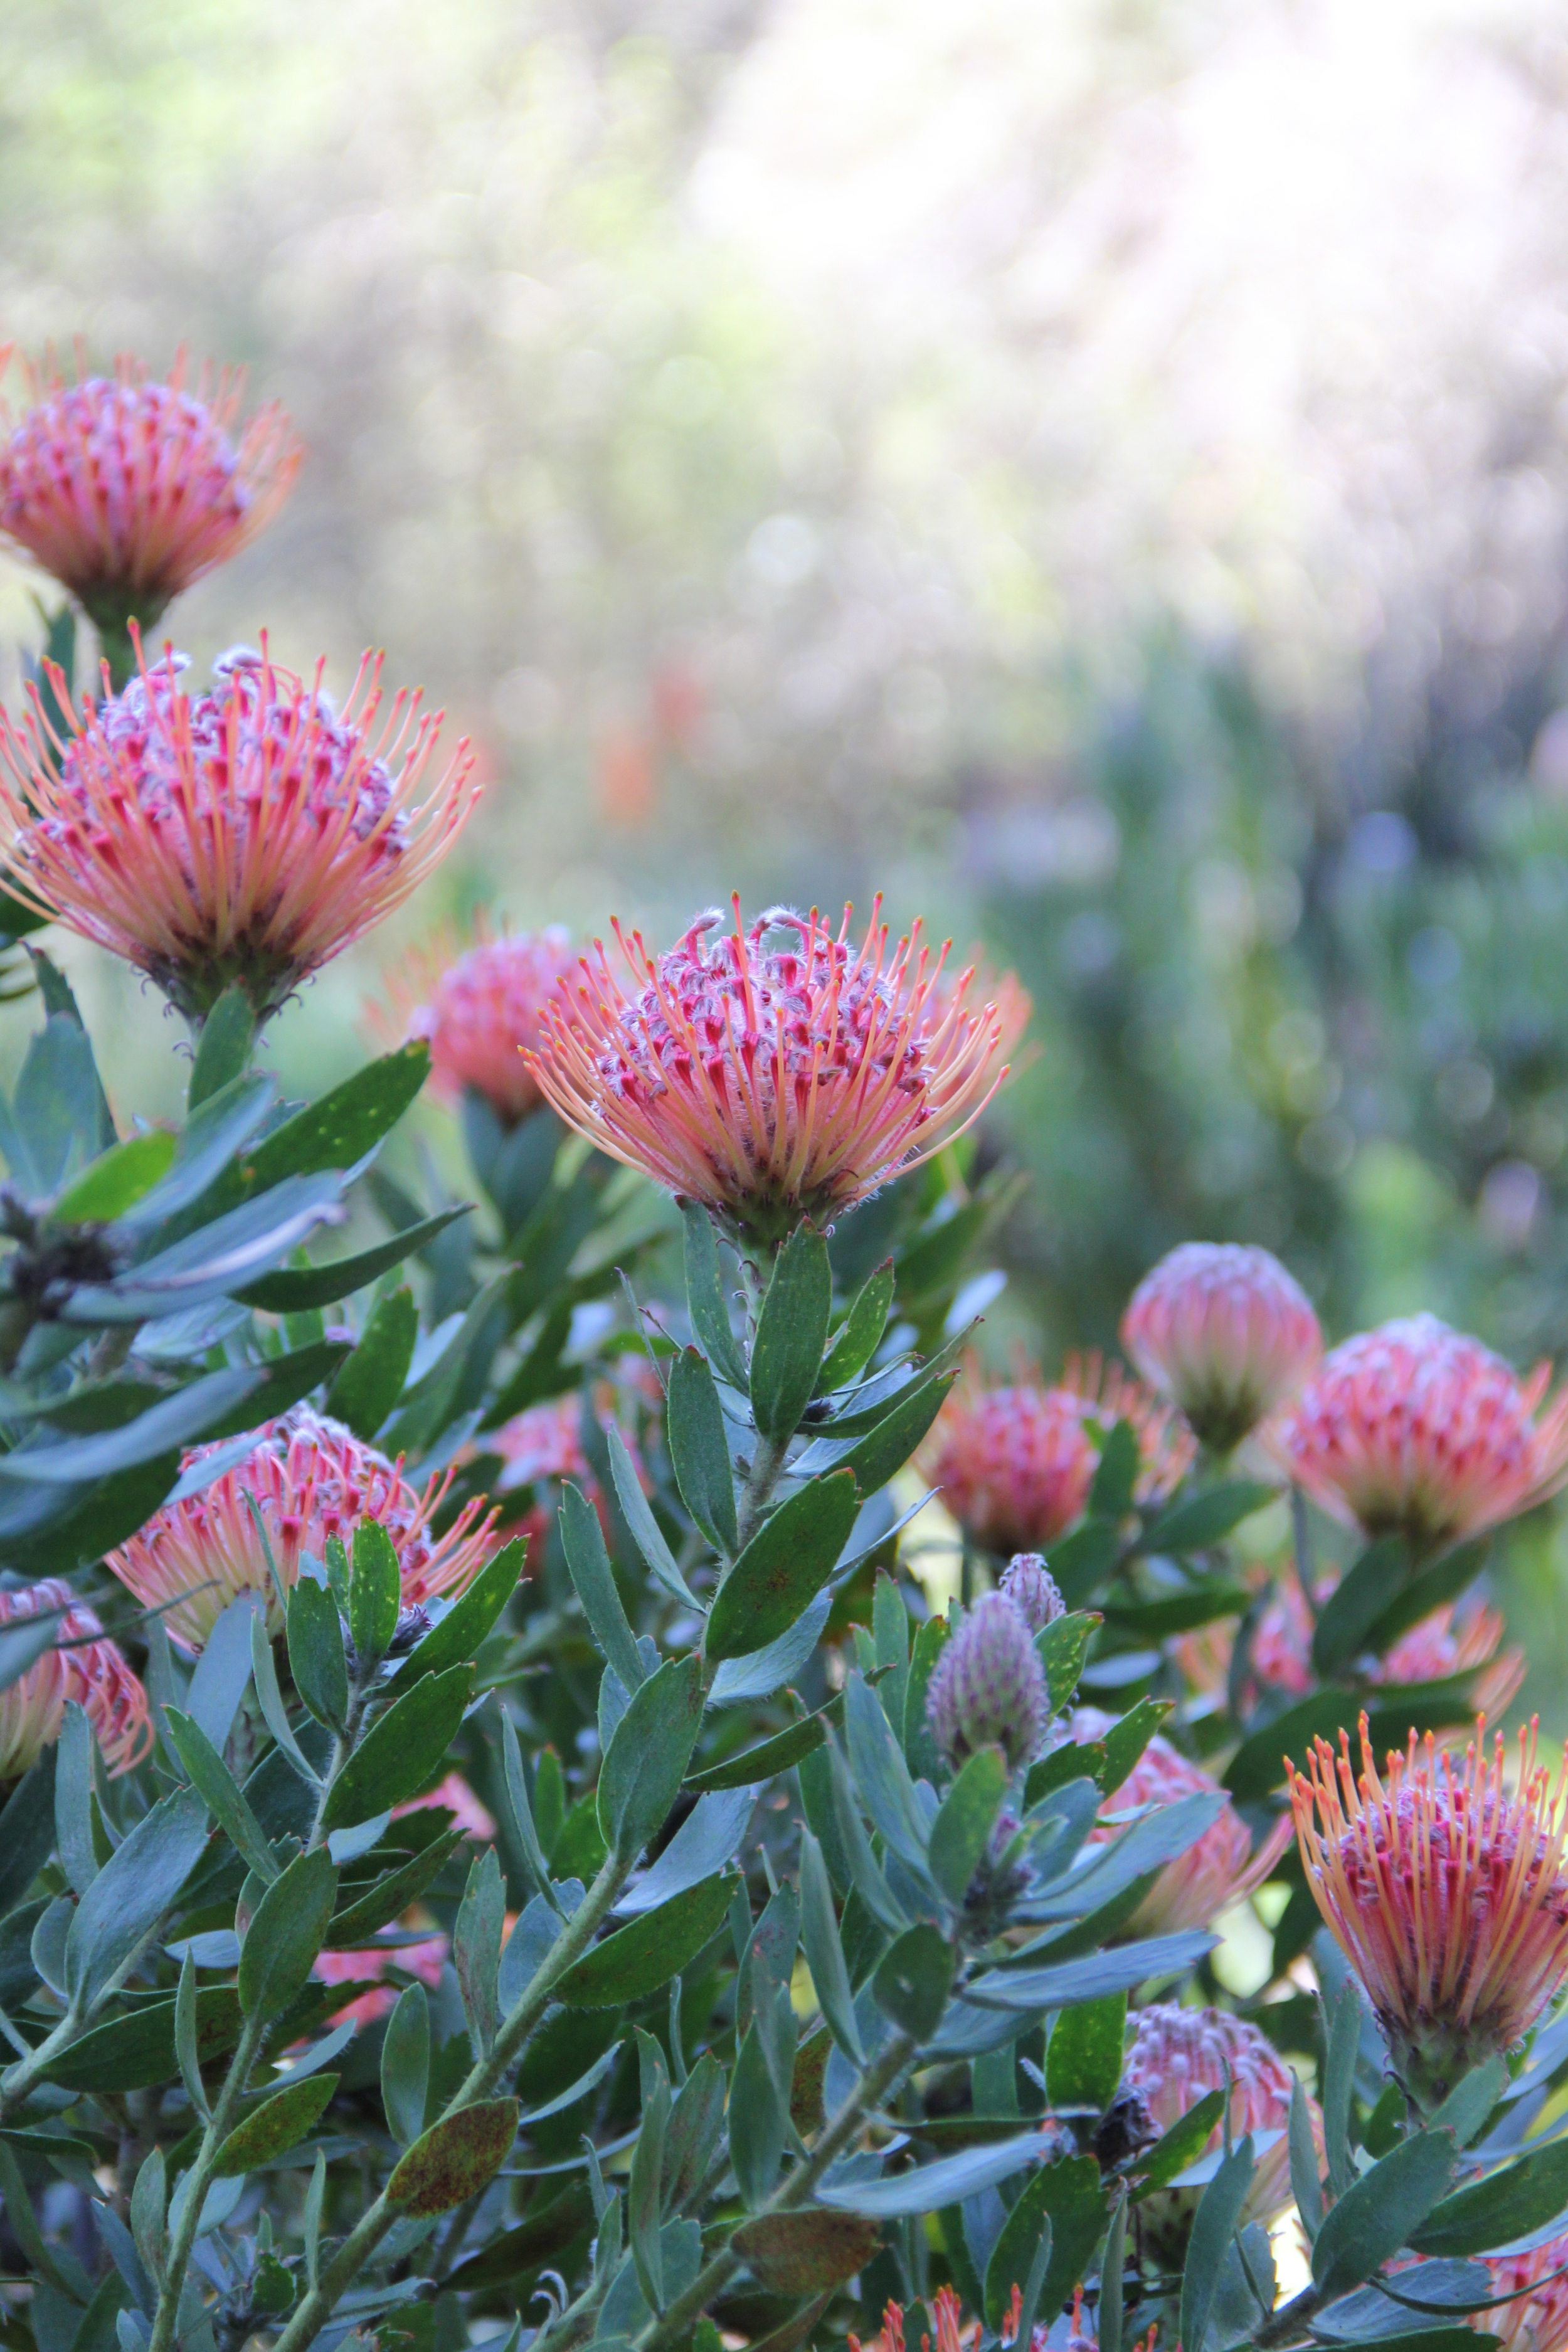 Blooming protea in the South African area